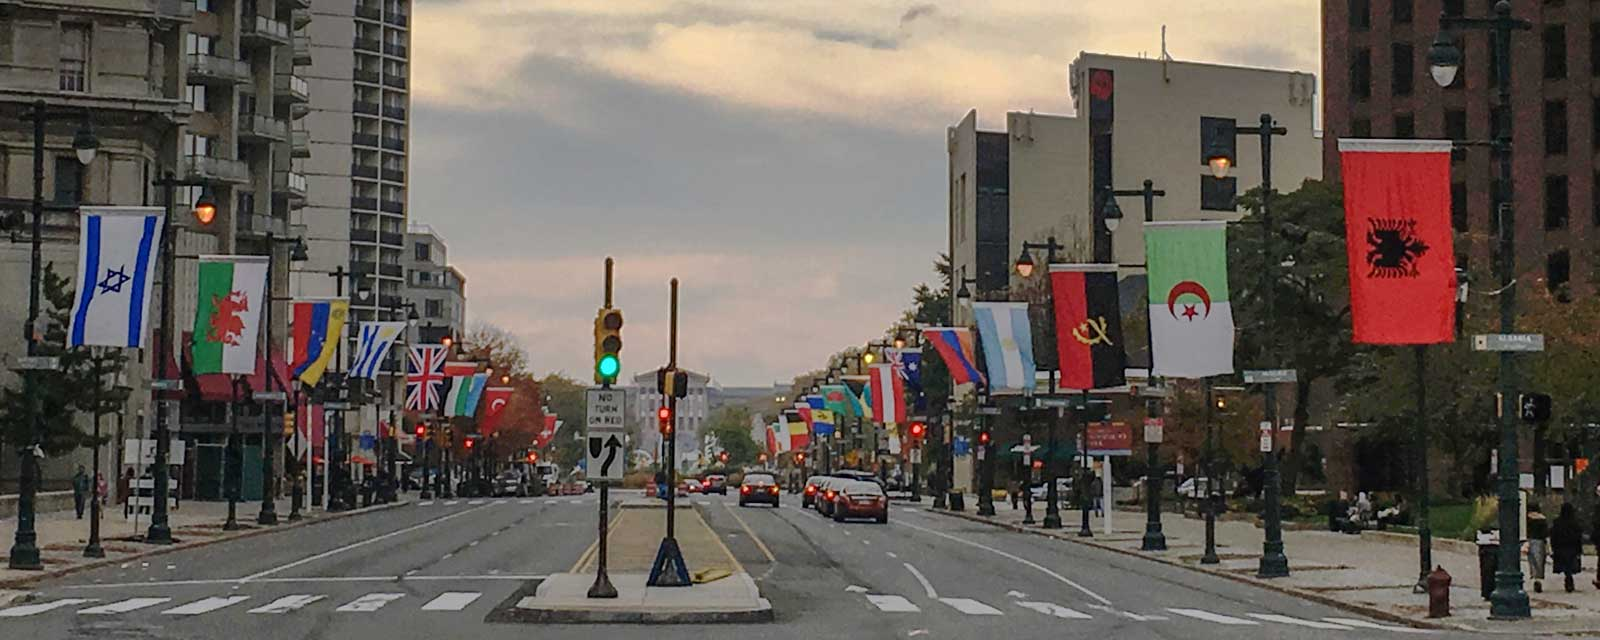 Ben-Franklin-Parkway-in-Philadelphia-flags-1600x640